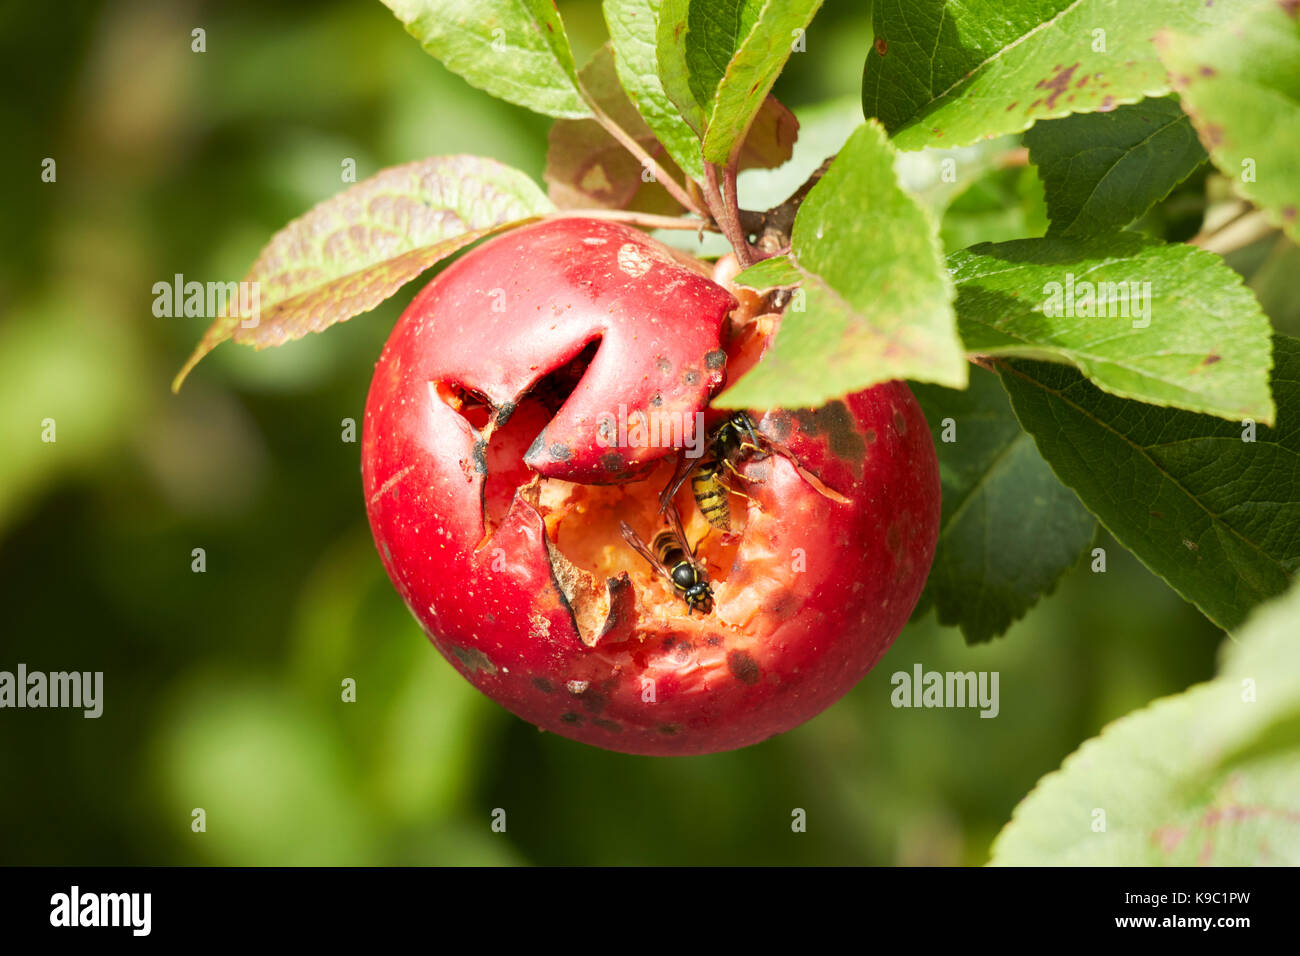 wasps feeding in water split home grown discovery apples in a garden in the uk - Stock Image